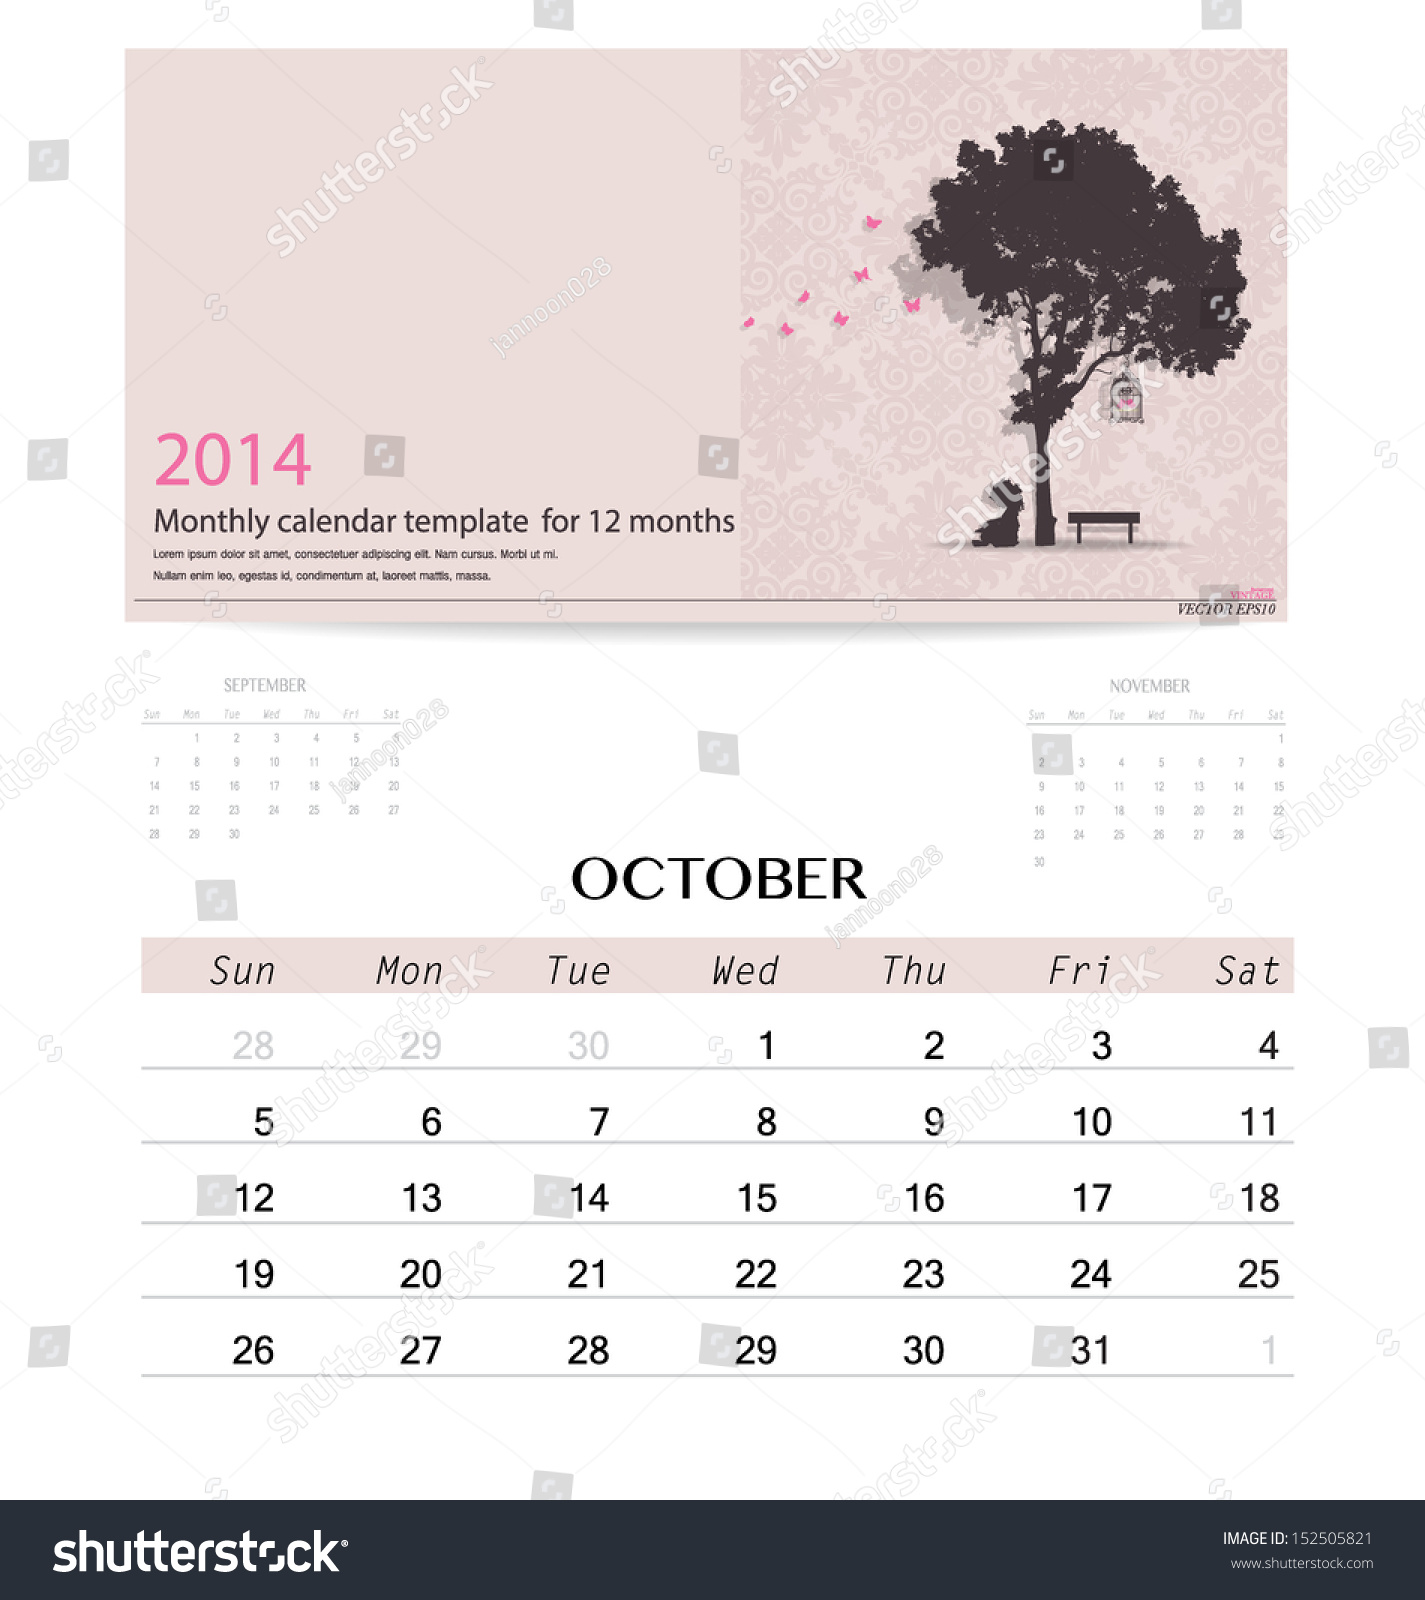 Calendar Month Illustration : Calendar monthly template for october